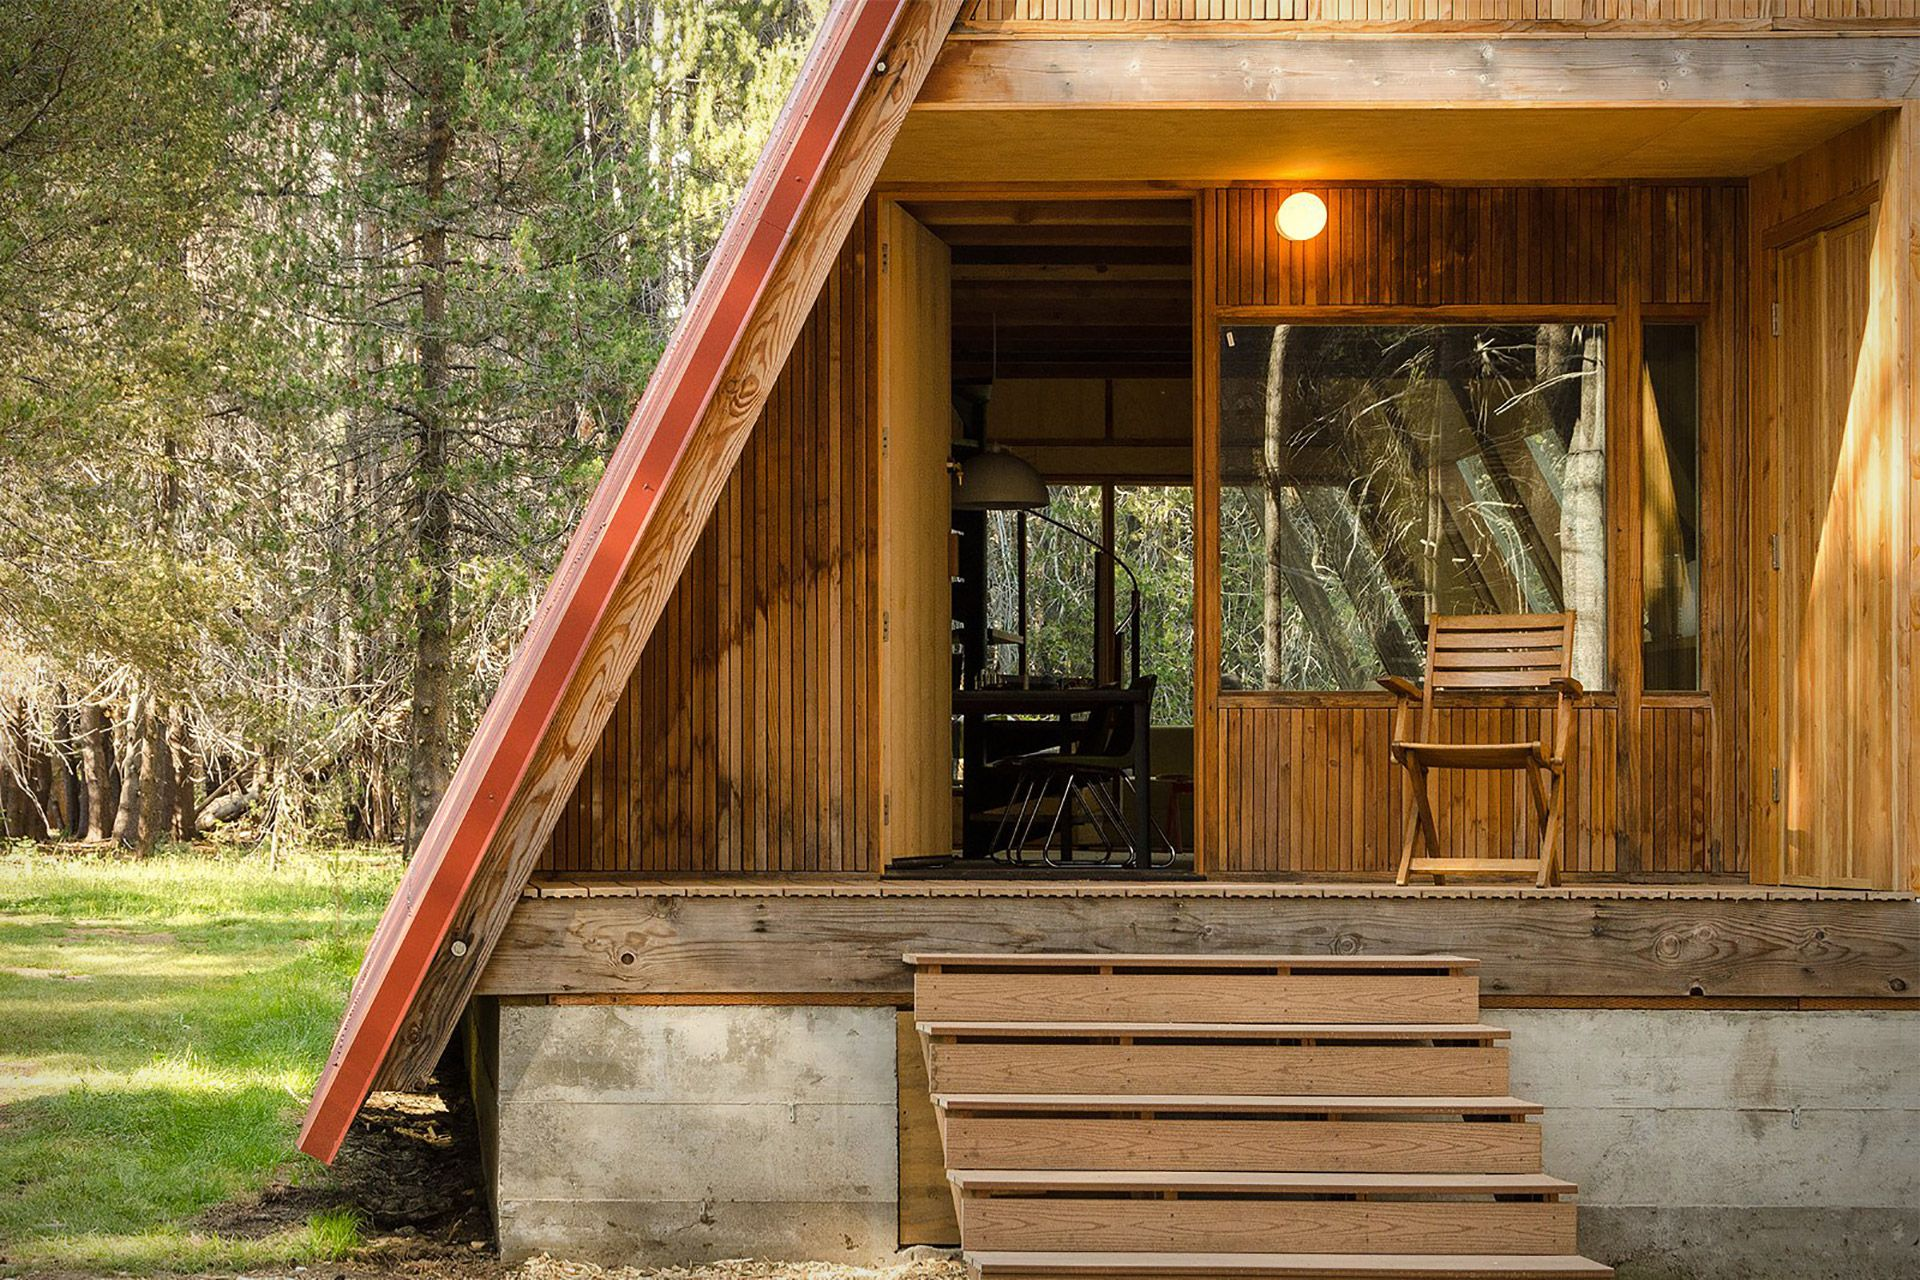 to guide trading master duluth park complete cabins lodges national yosemite product the store